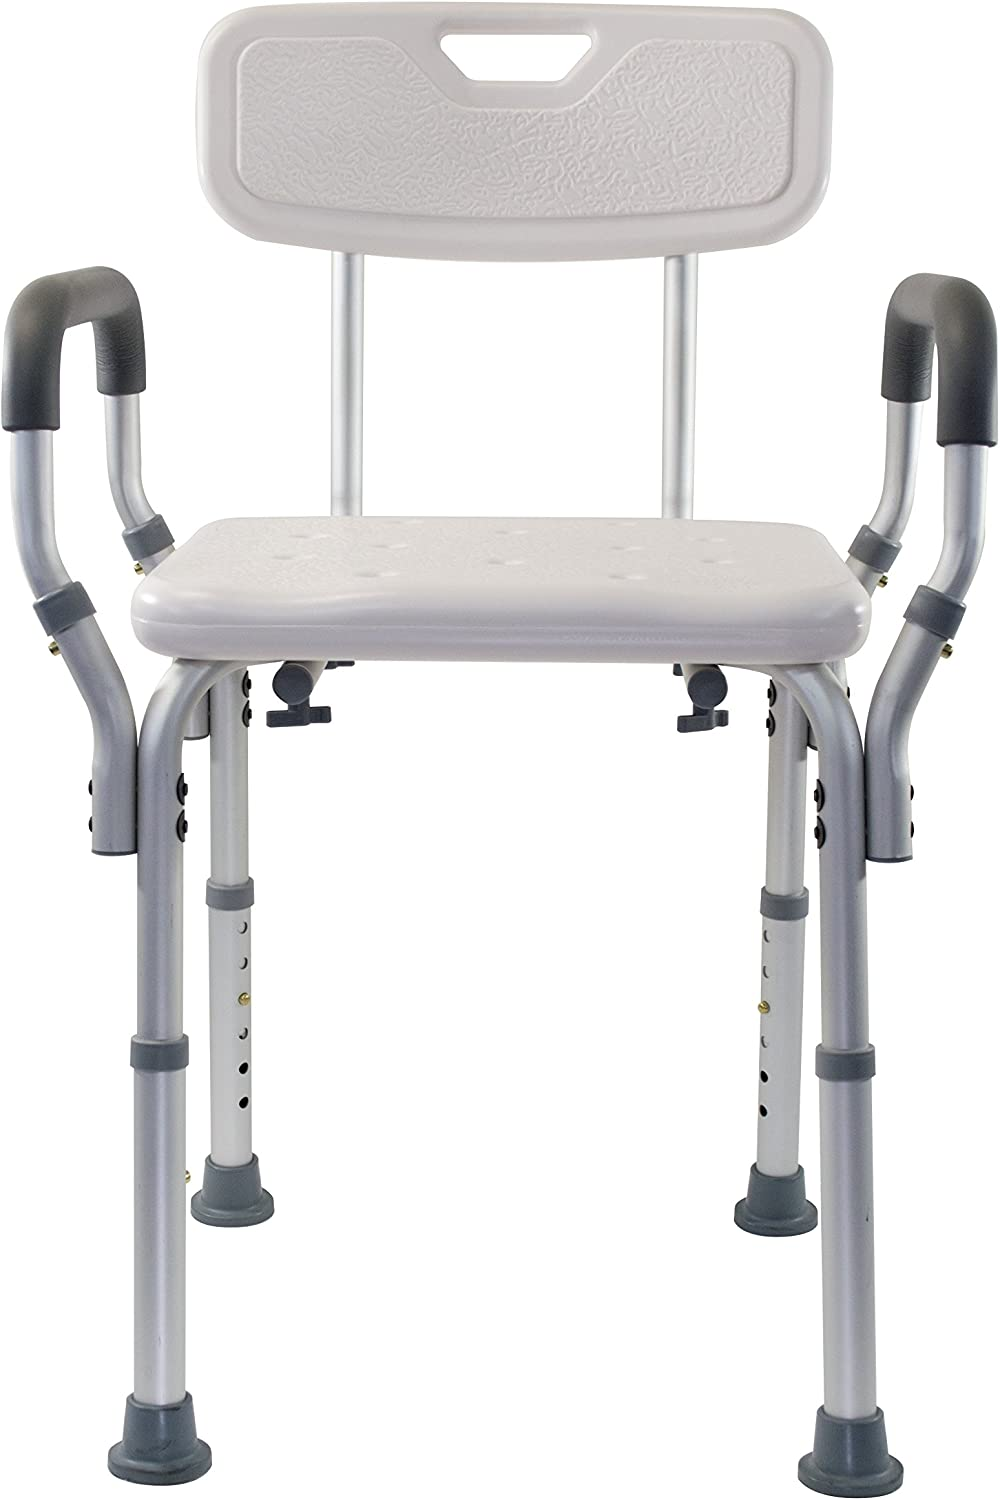 Essential Medical Supply Shower and Bath Bench with Arms and Back: Health & Personal Care